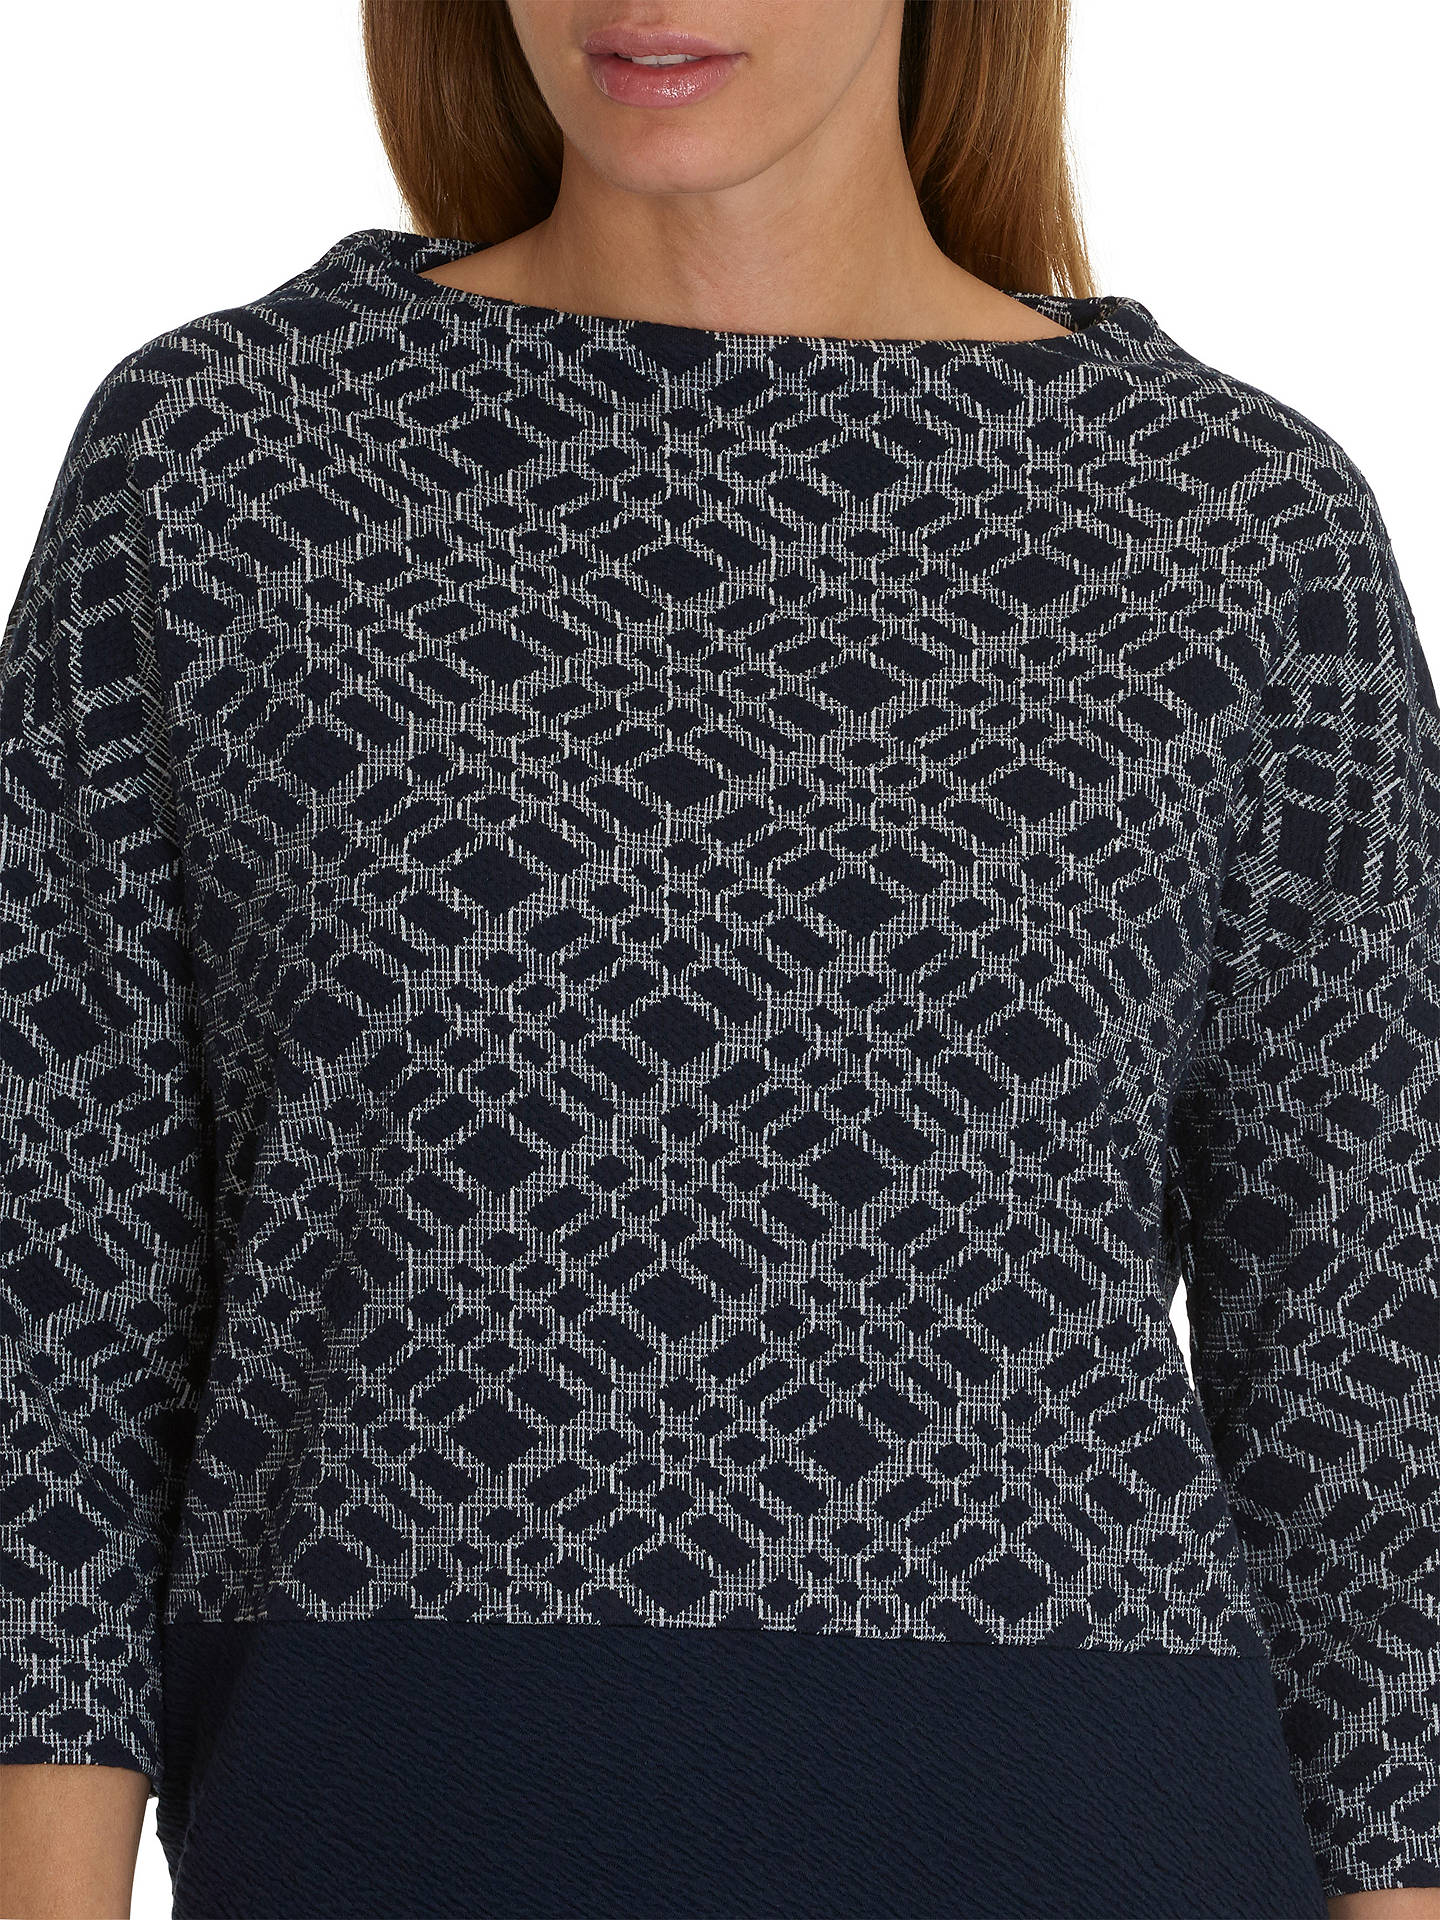 BuyBetty Barclay Three Quarter Sleeve Jumper, Blue/Cream, 16 Online at johnlewis.com